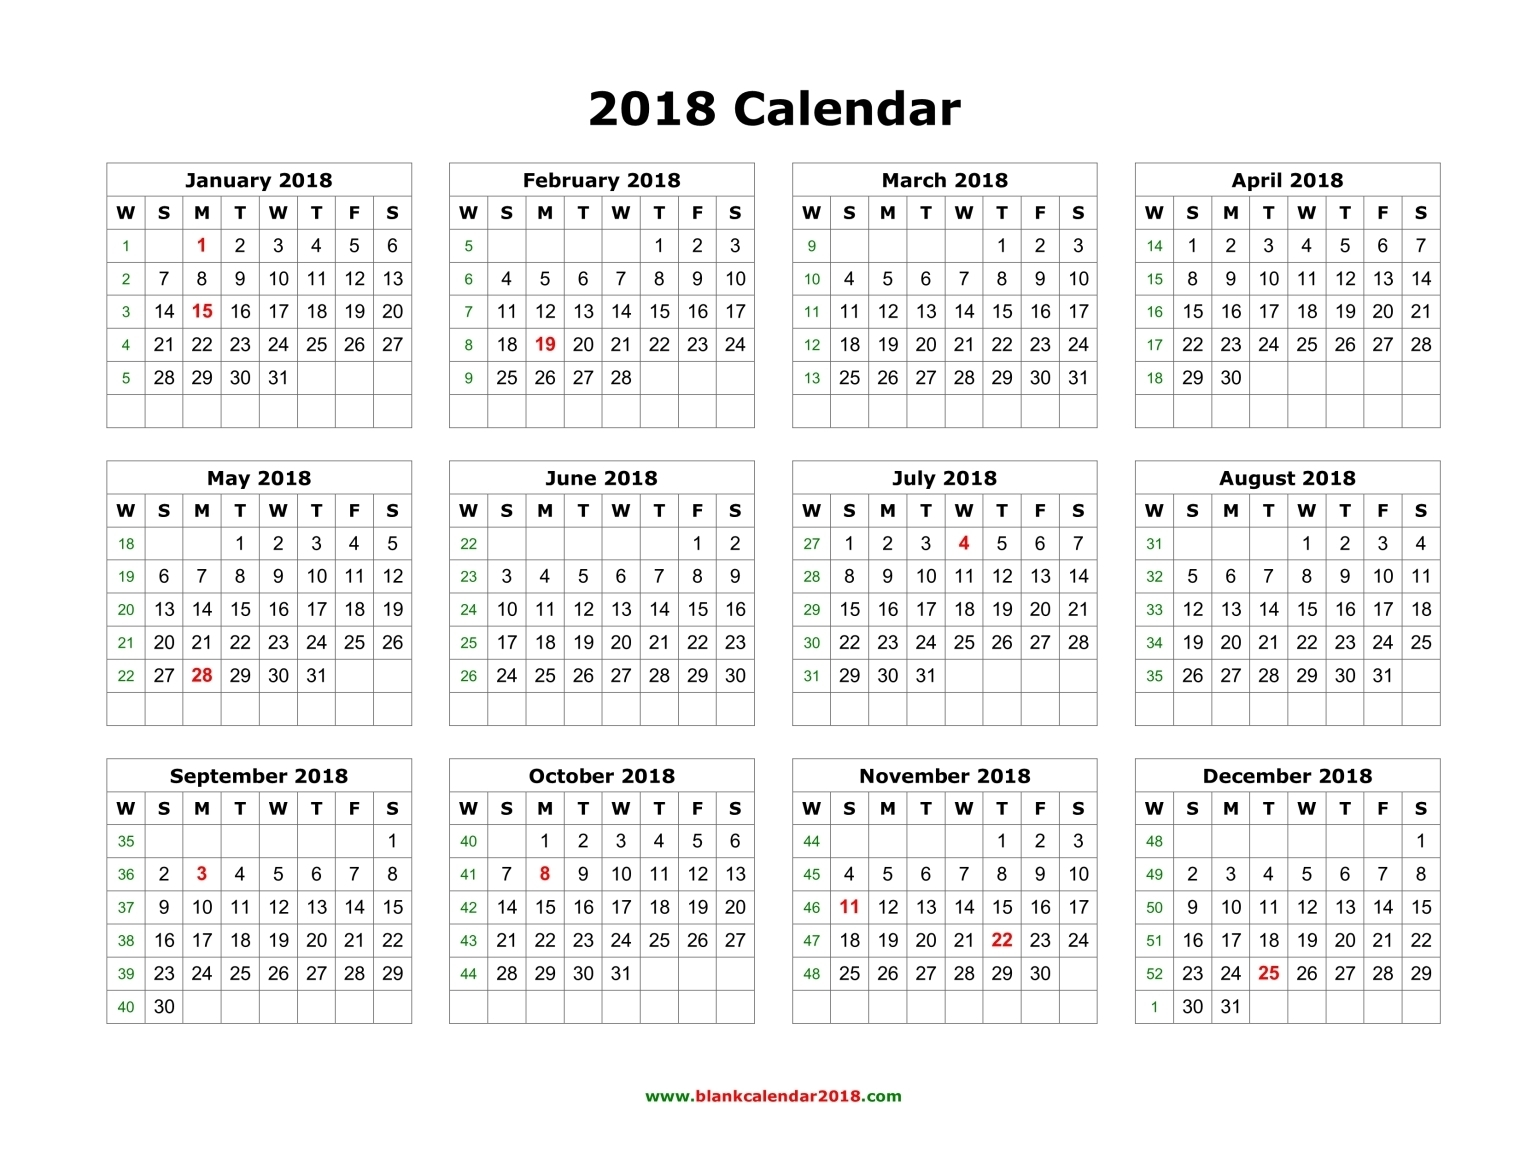 download 2018 calendar word